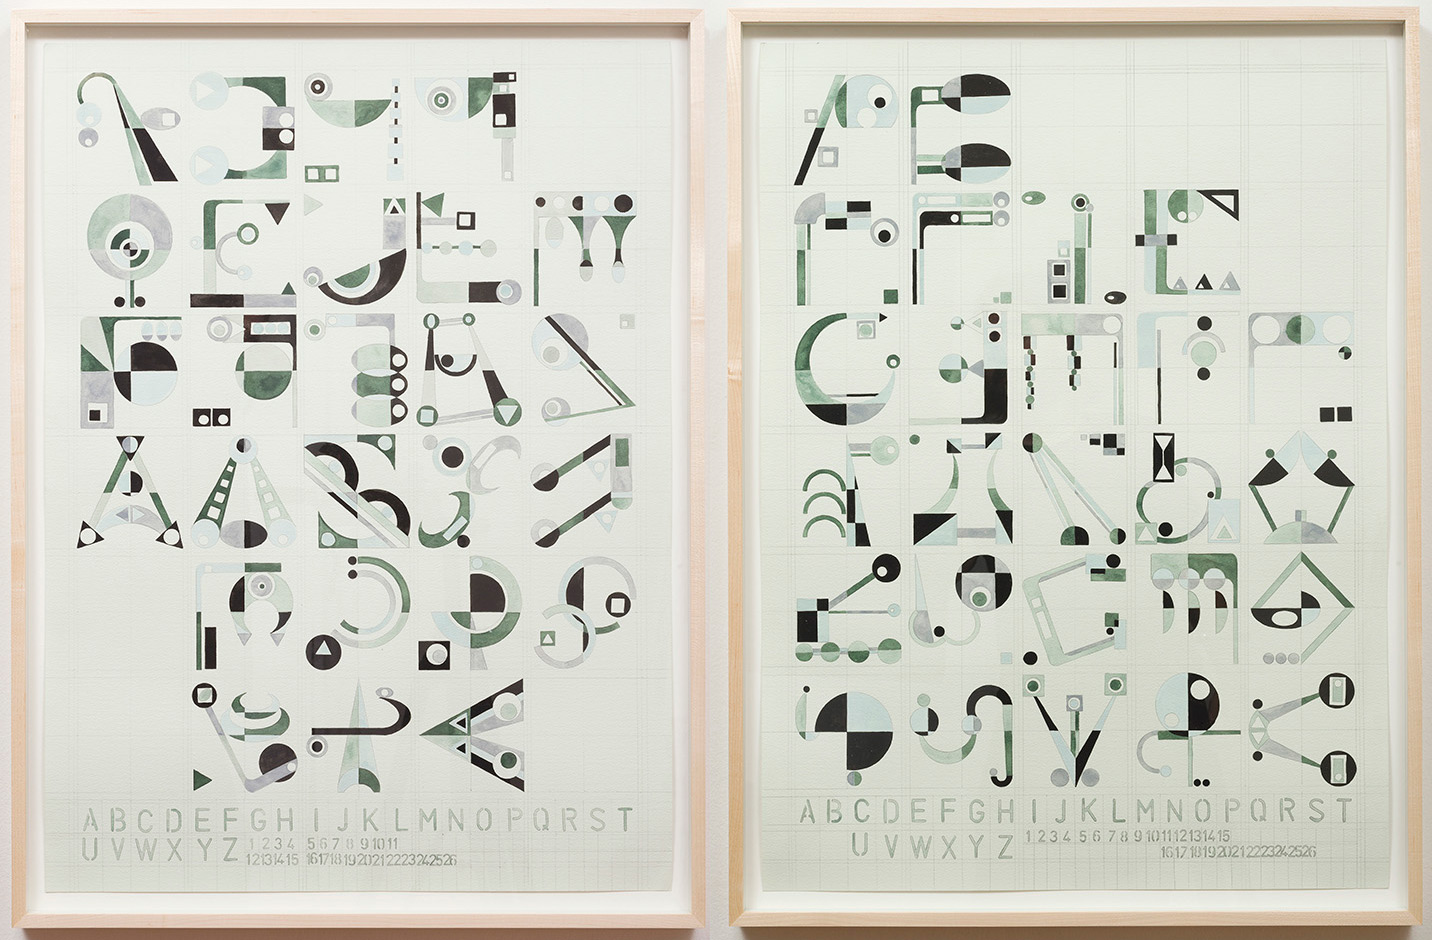 Passing The River, Magickal Alphabet Series, 2014 Pencil and Gouache on Watercolor Paper 44 x 30 inches